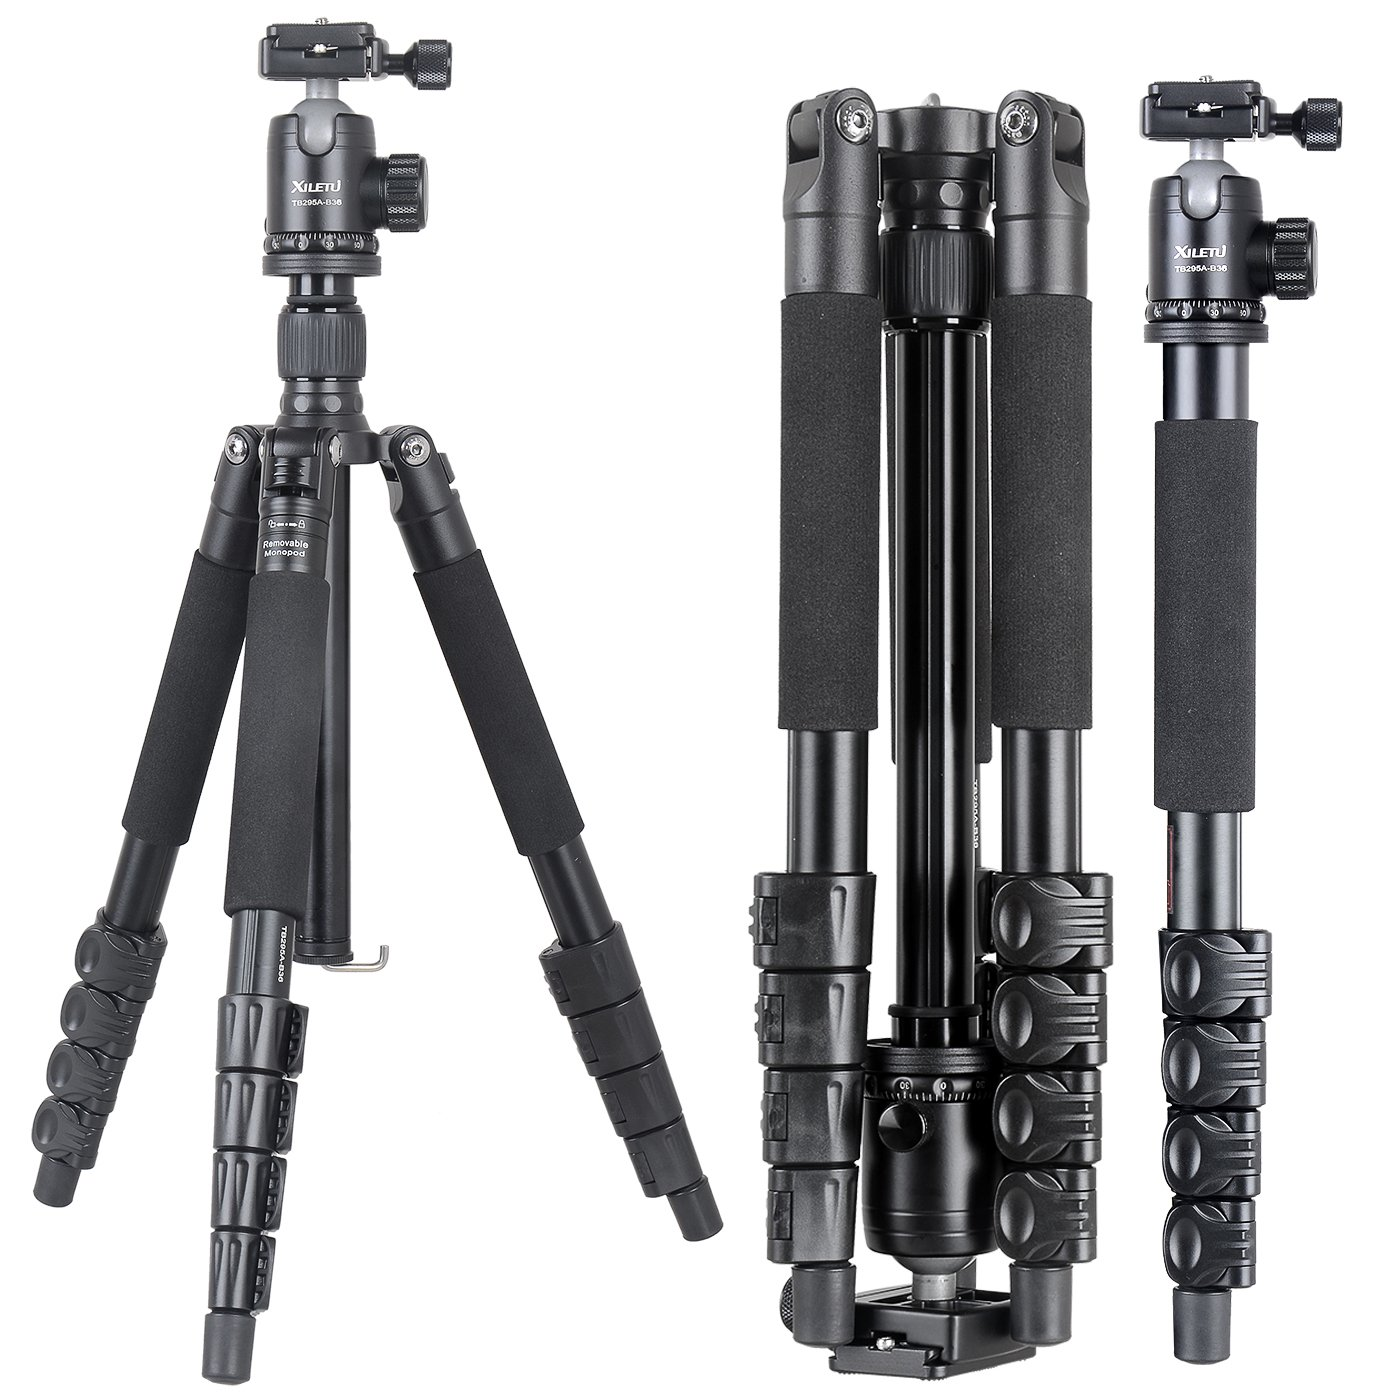 XILETU TB255A+B36 monopod Tripod Light Weight Aluminum Travel Tripod Come with Quick Release Plate Ball Head and Carry Case for Canon Sony Nikon DSLR(Black) by XILETU